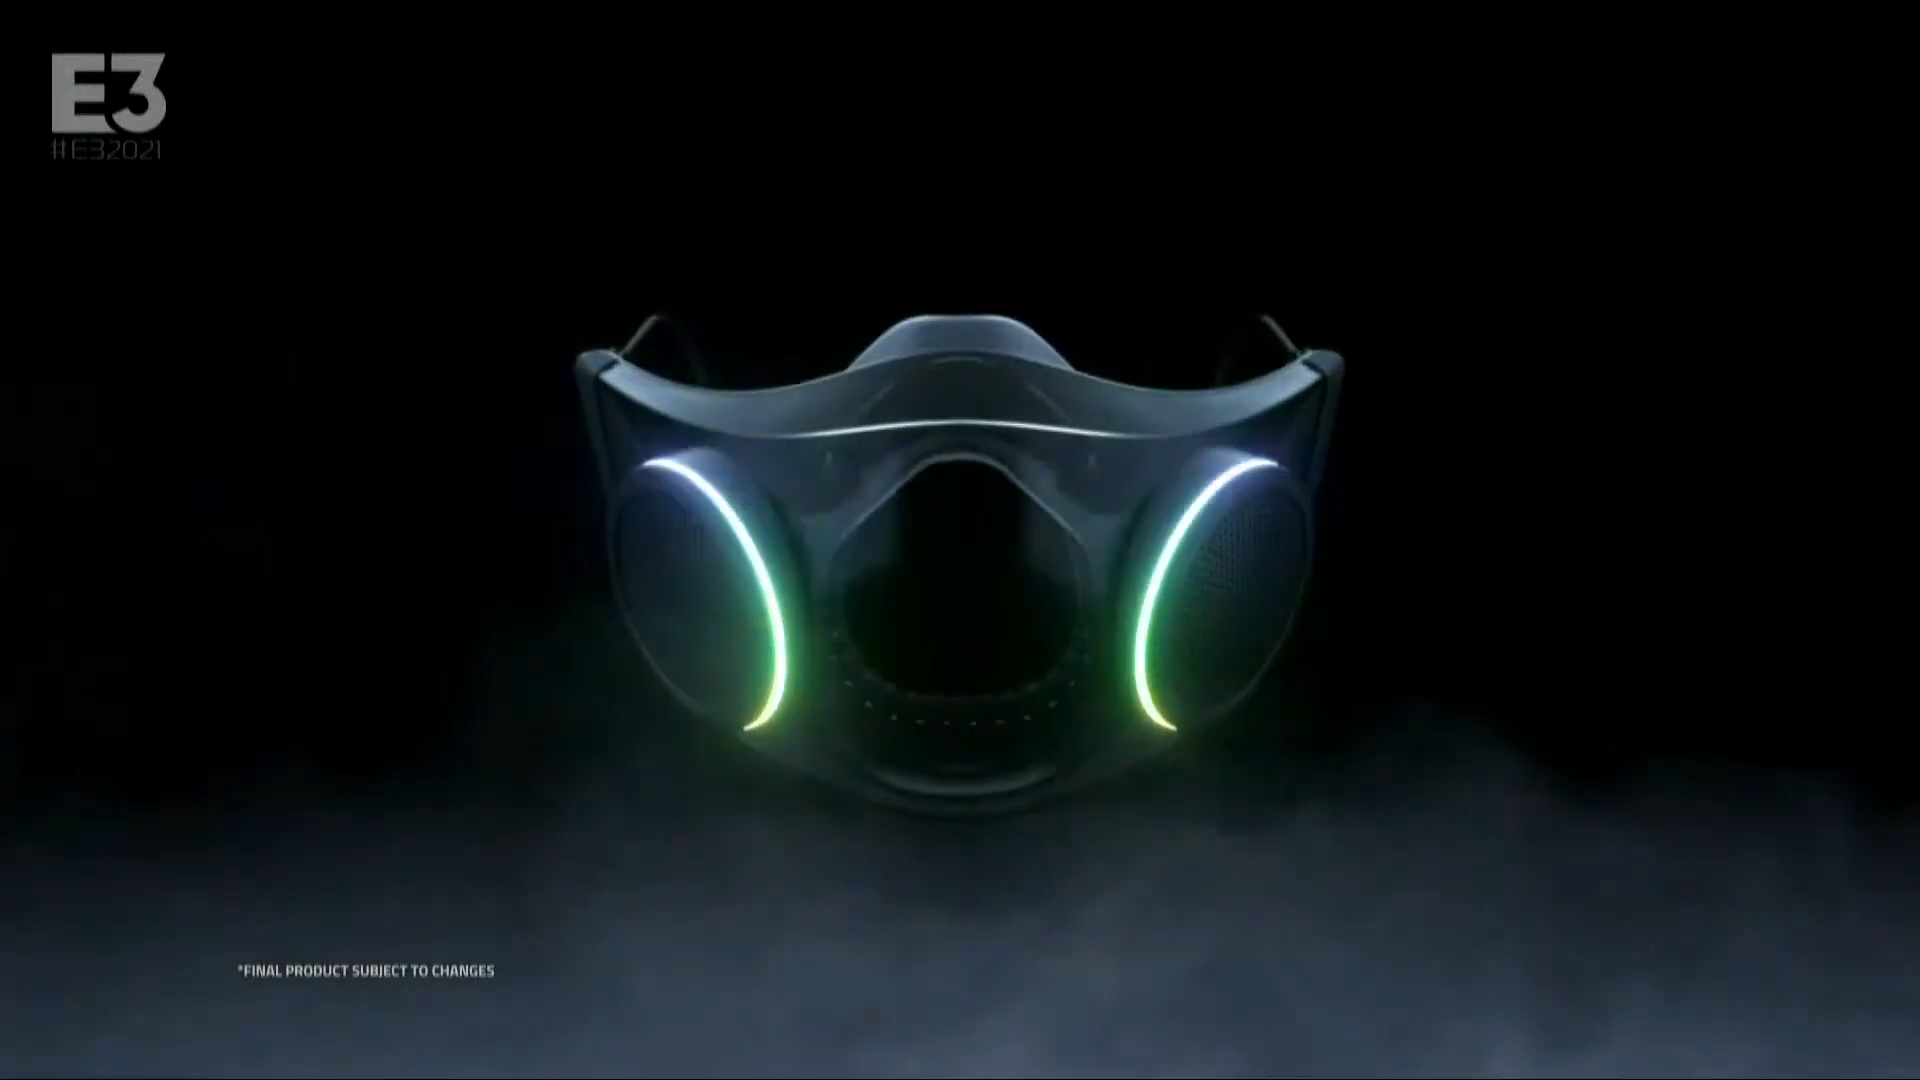 Video: Web's source code to be auctioned as NFT, Razer's Project Hazel N95 mask gets launch window